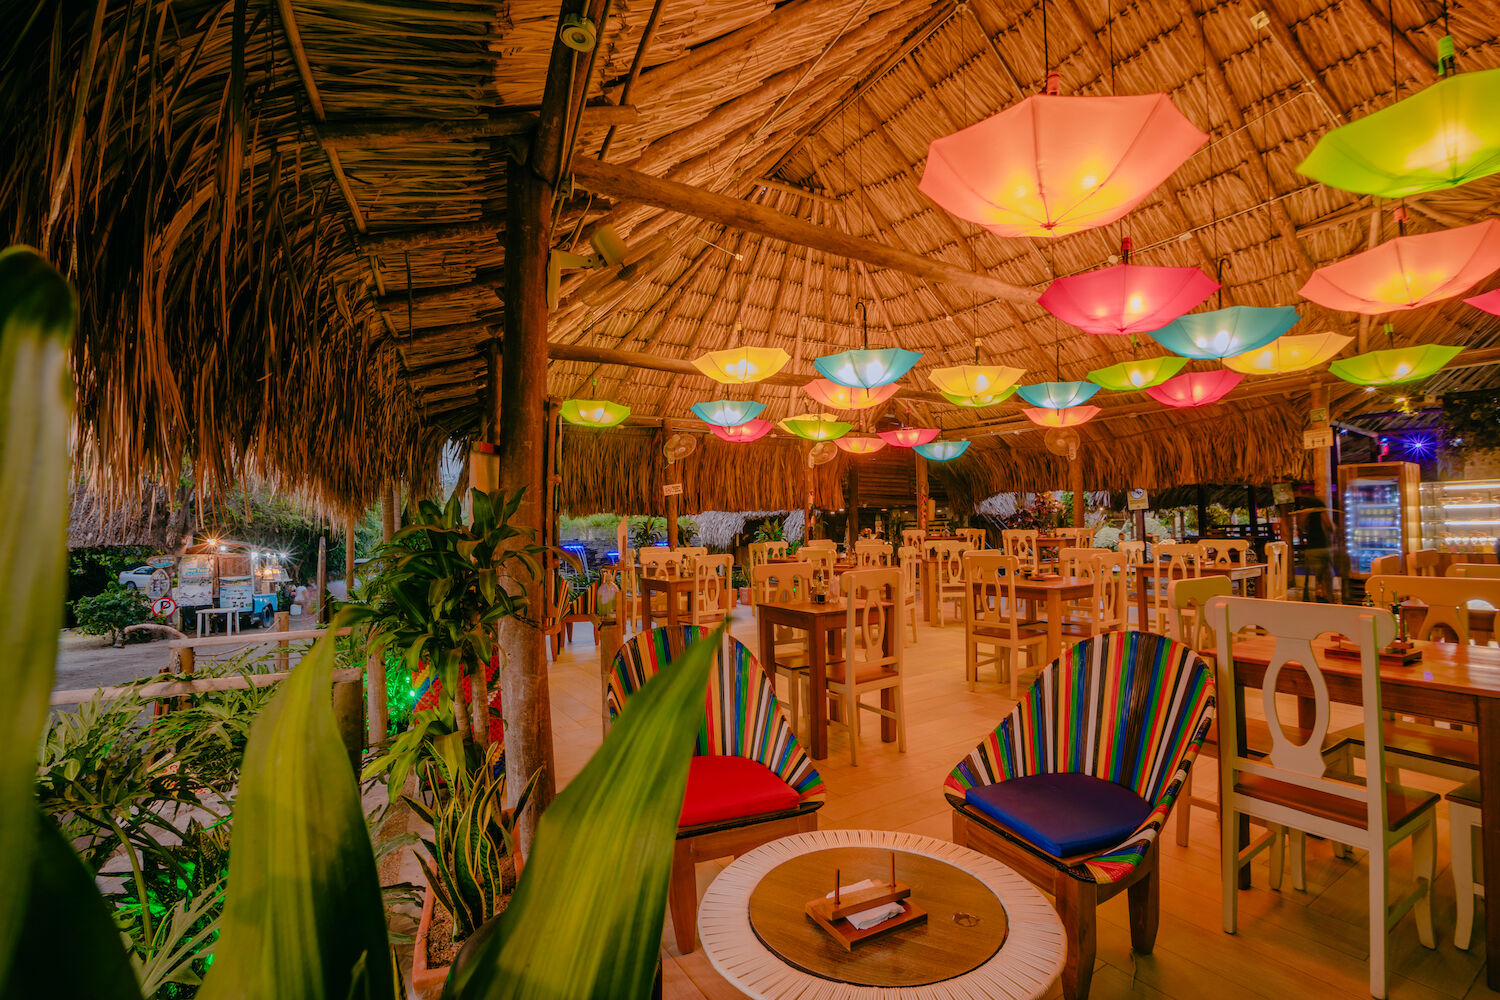 Tiki Hut Hostel Palomino Colombia Reviews Hostelz Com